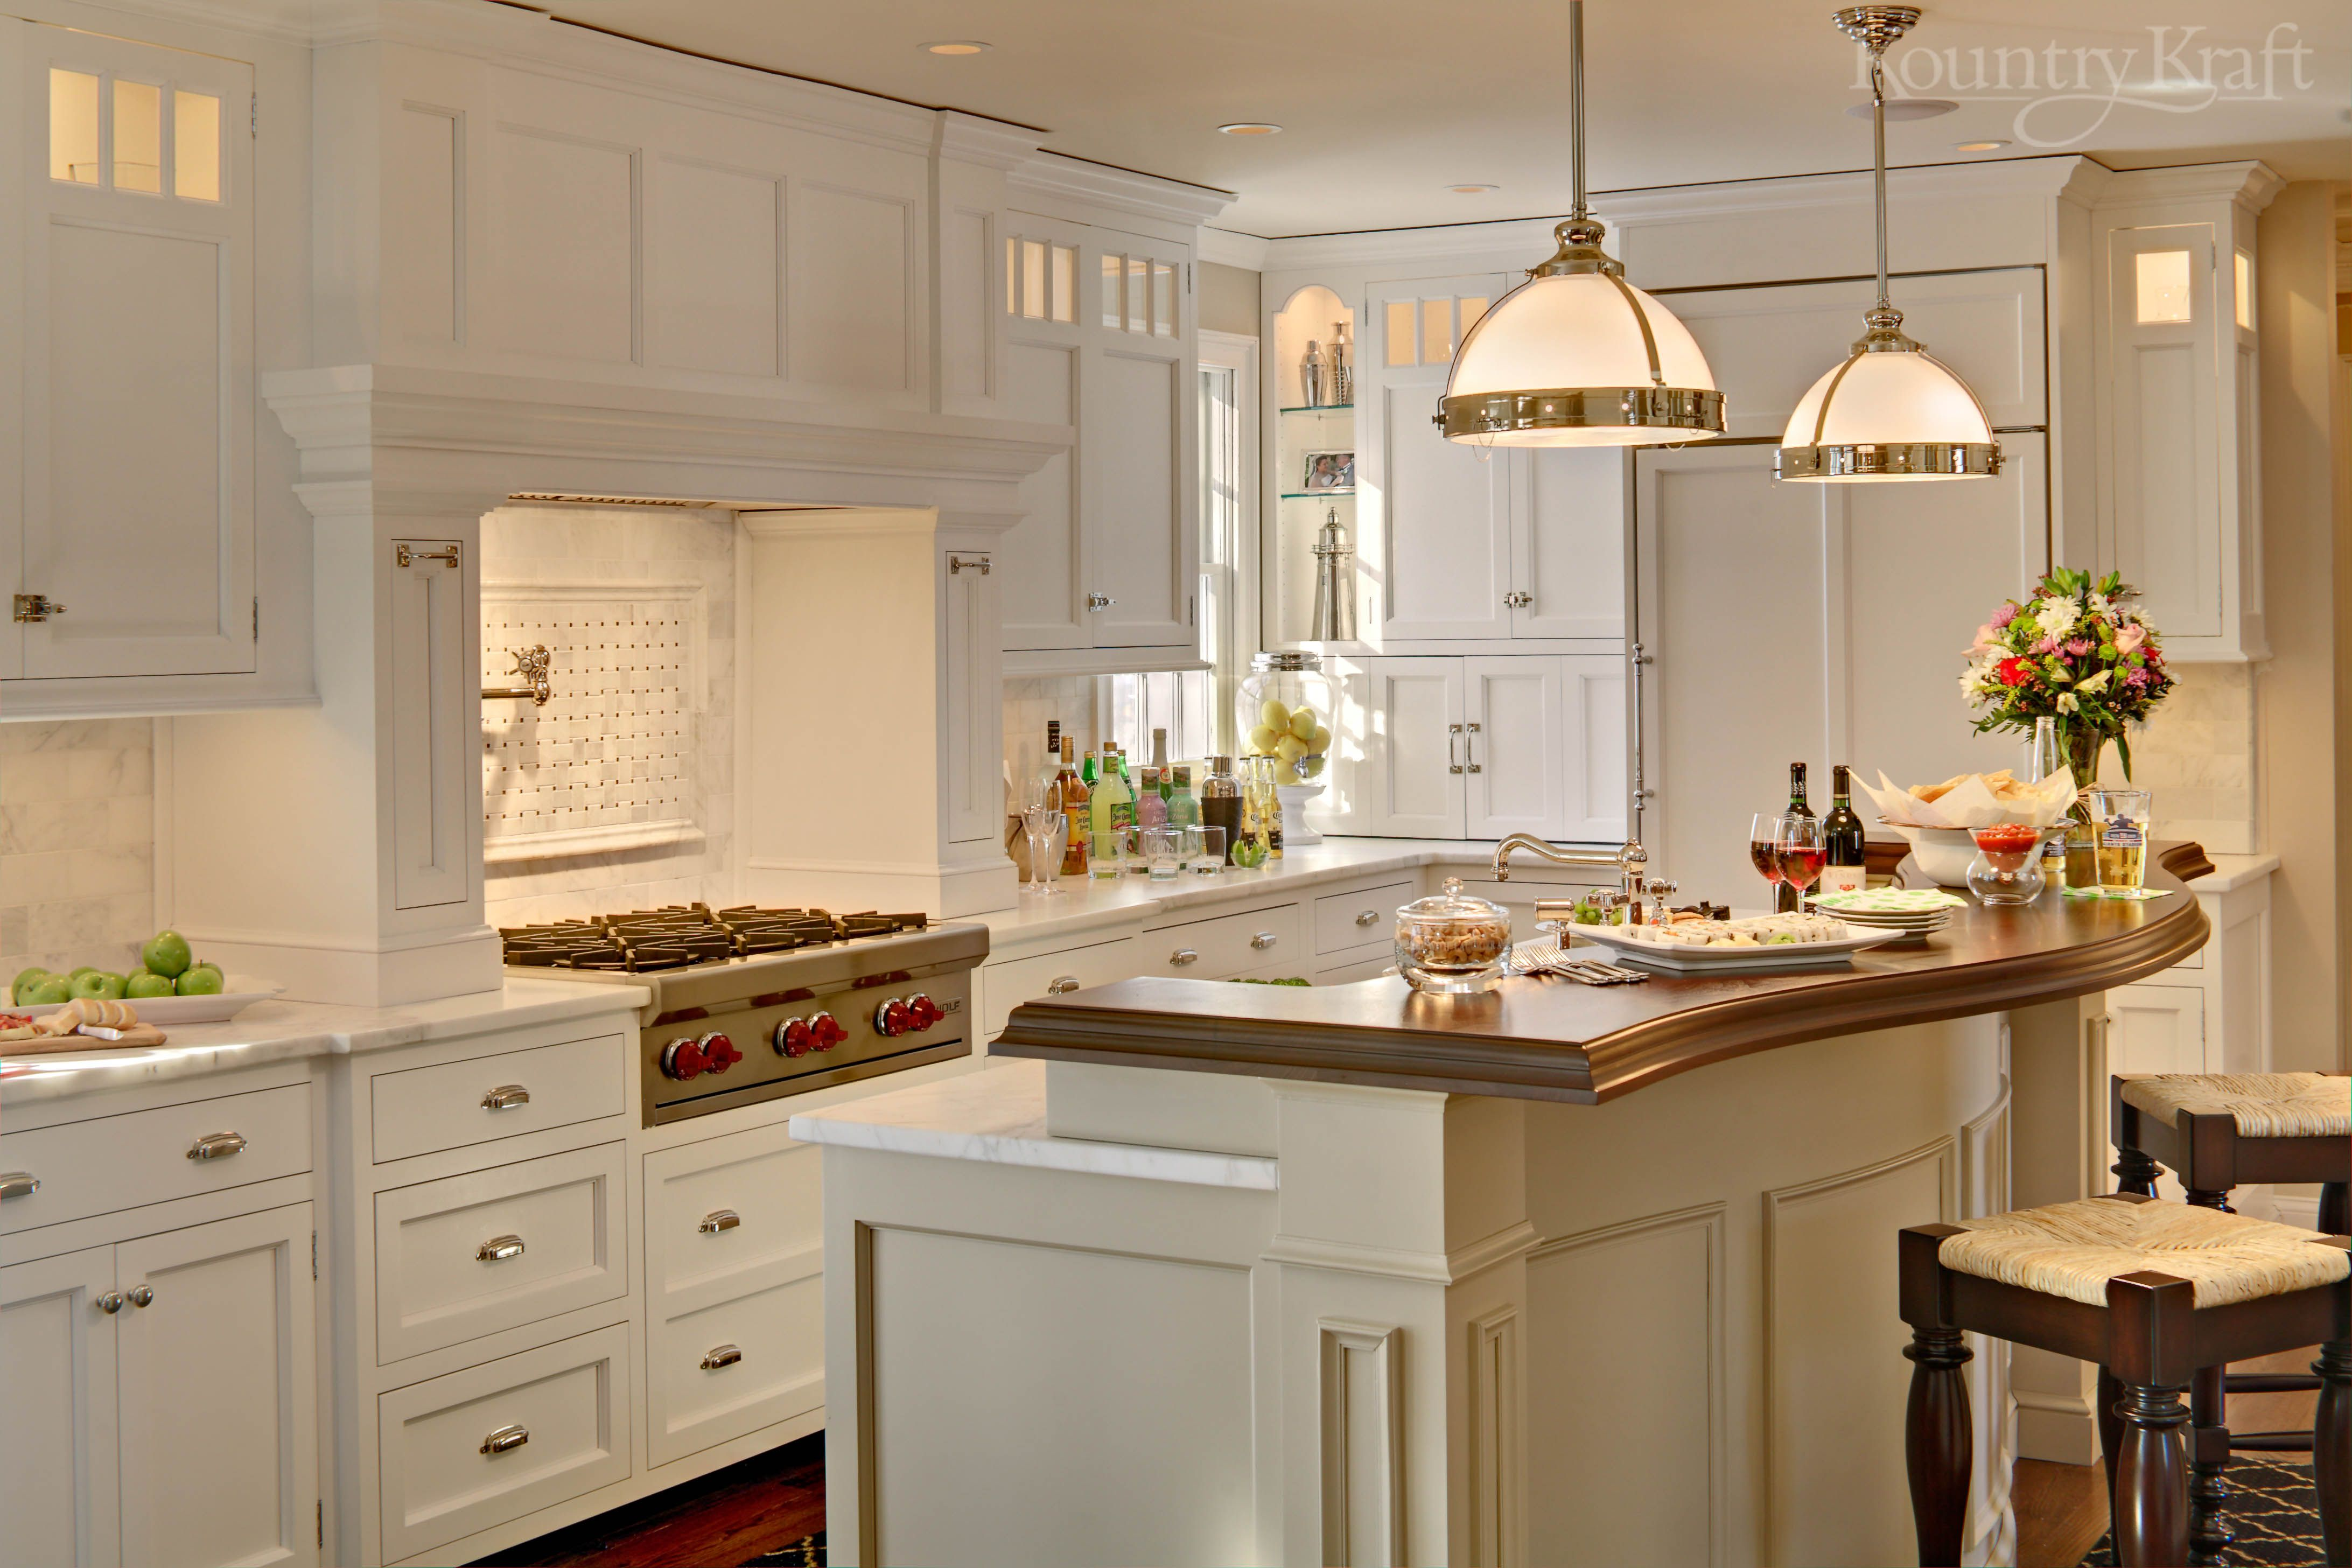 Painting Your Kitchen Cabinets Is No Small Undertaking: Custom Kitchen Cabinets Designed By Tom McCloskey Of